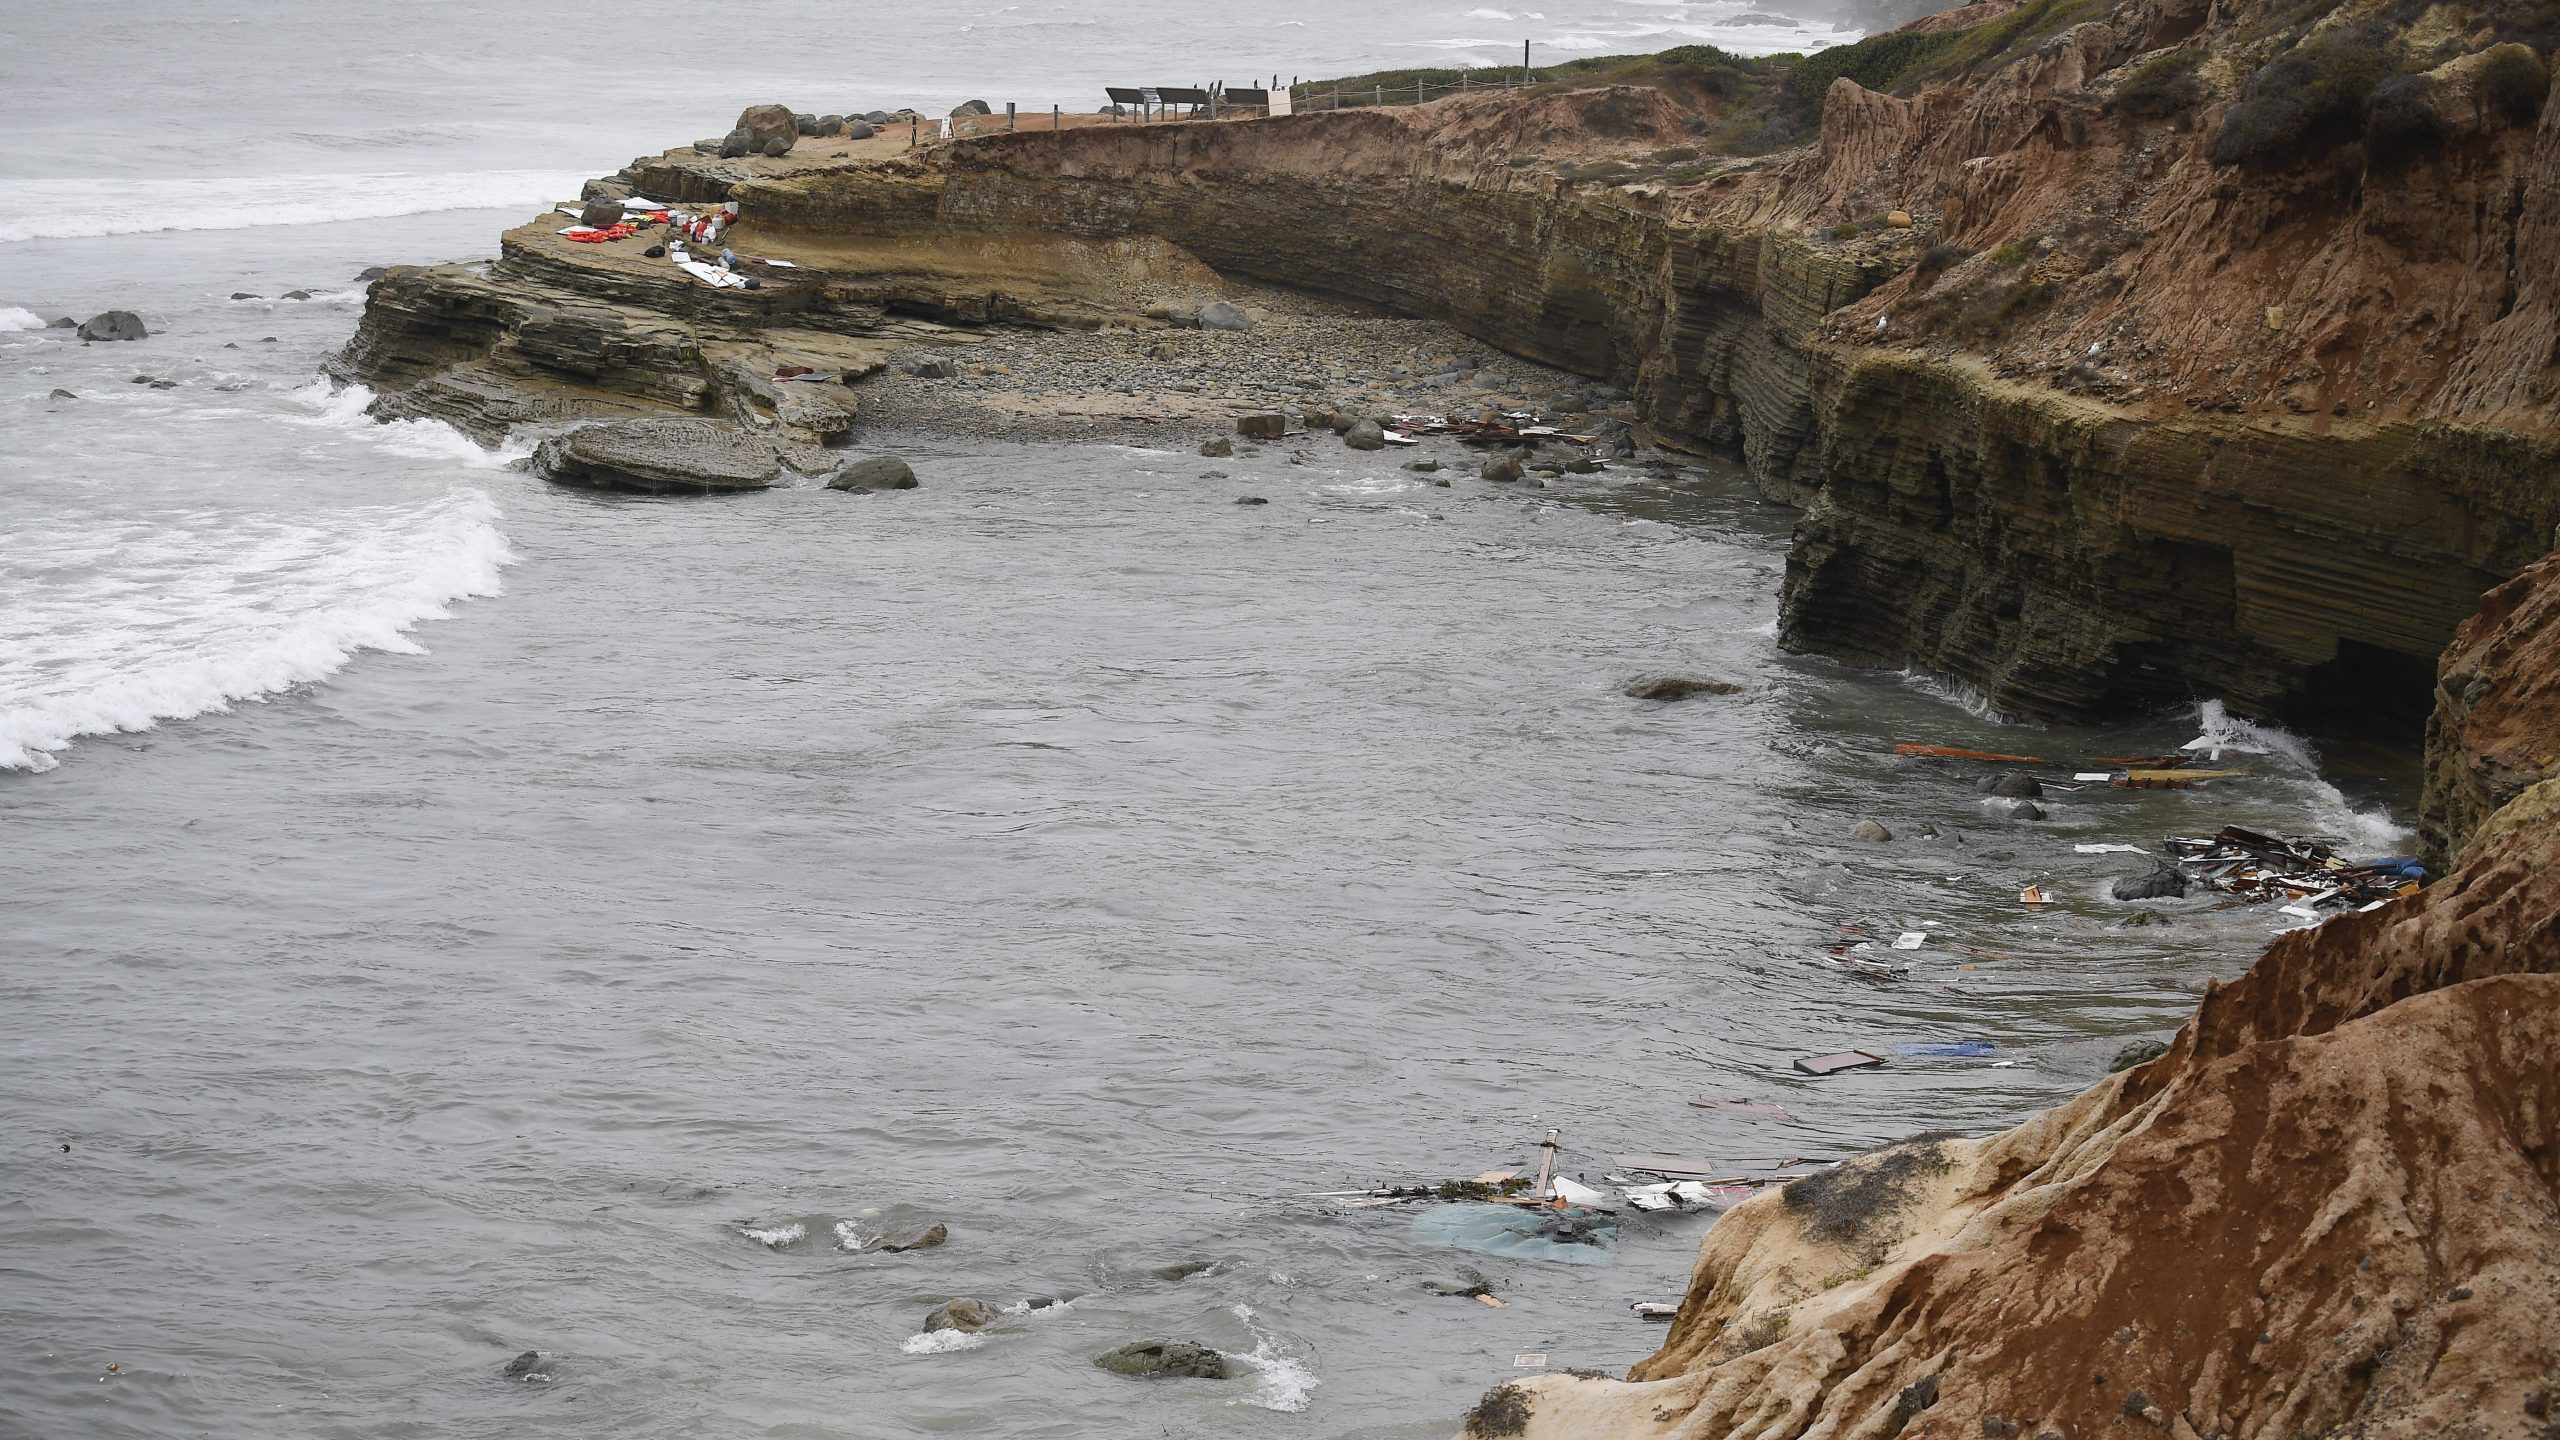 Wreckage and debris from a capsized boat washes ashore at Cabrillo National Monument near where a boat capsized just off the San Diego coast on May 2, 2021. (Denis Poroy / Associated Press)